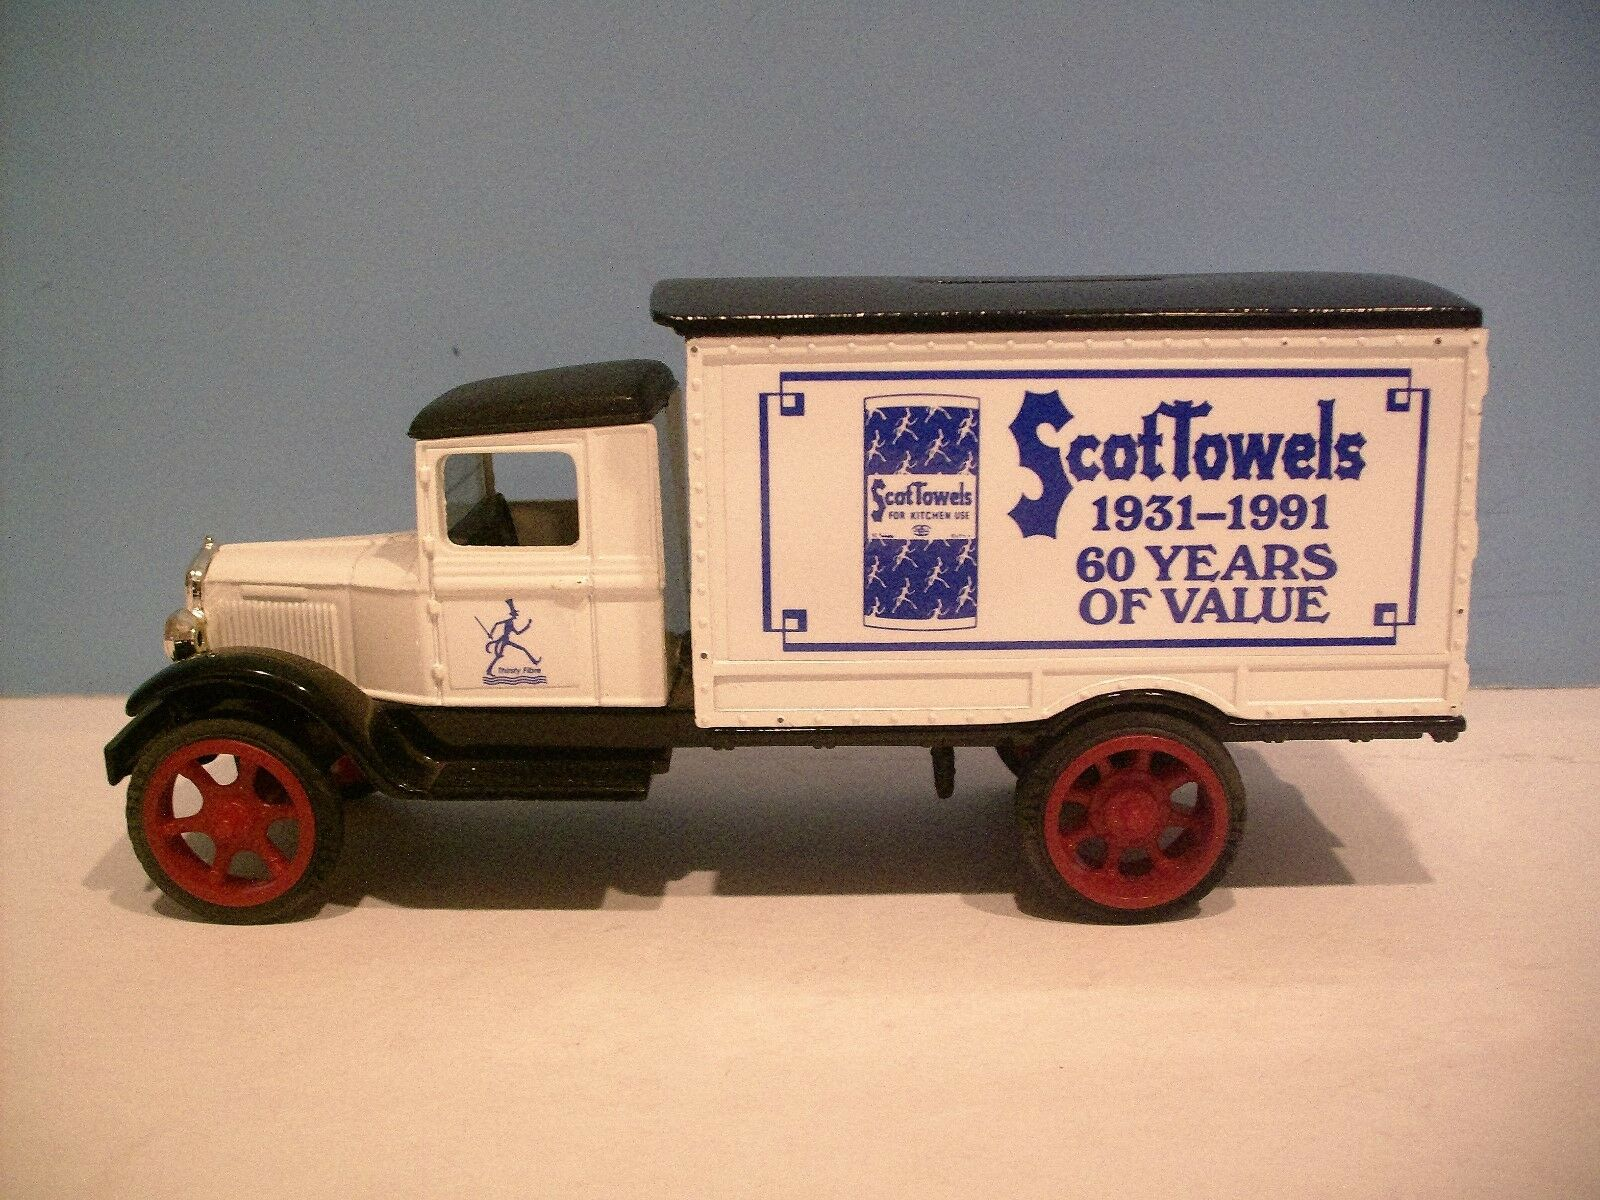 New ScotTowels 1 34 Scale Scale Scale 1931 Hawkeye Motor Diecast Bank By Ertl Co. 670164